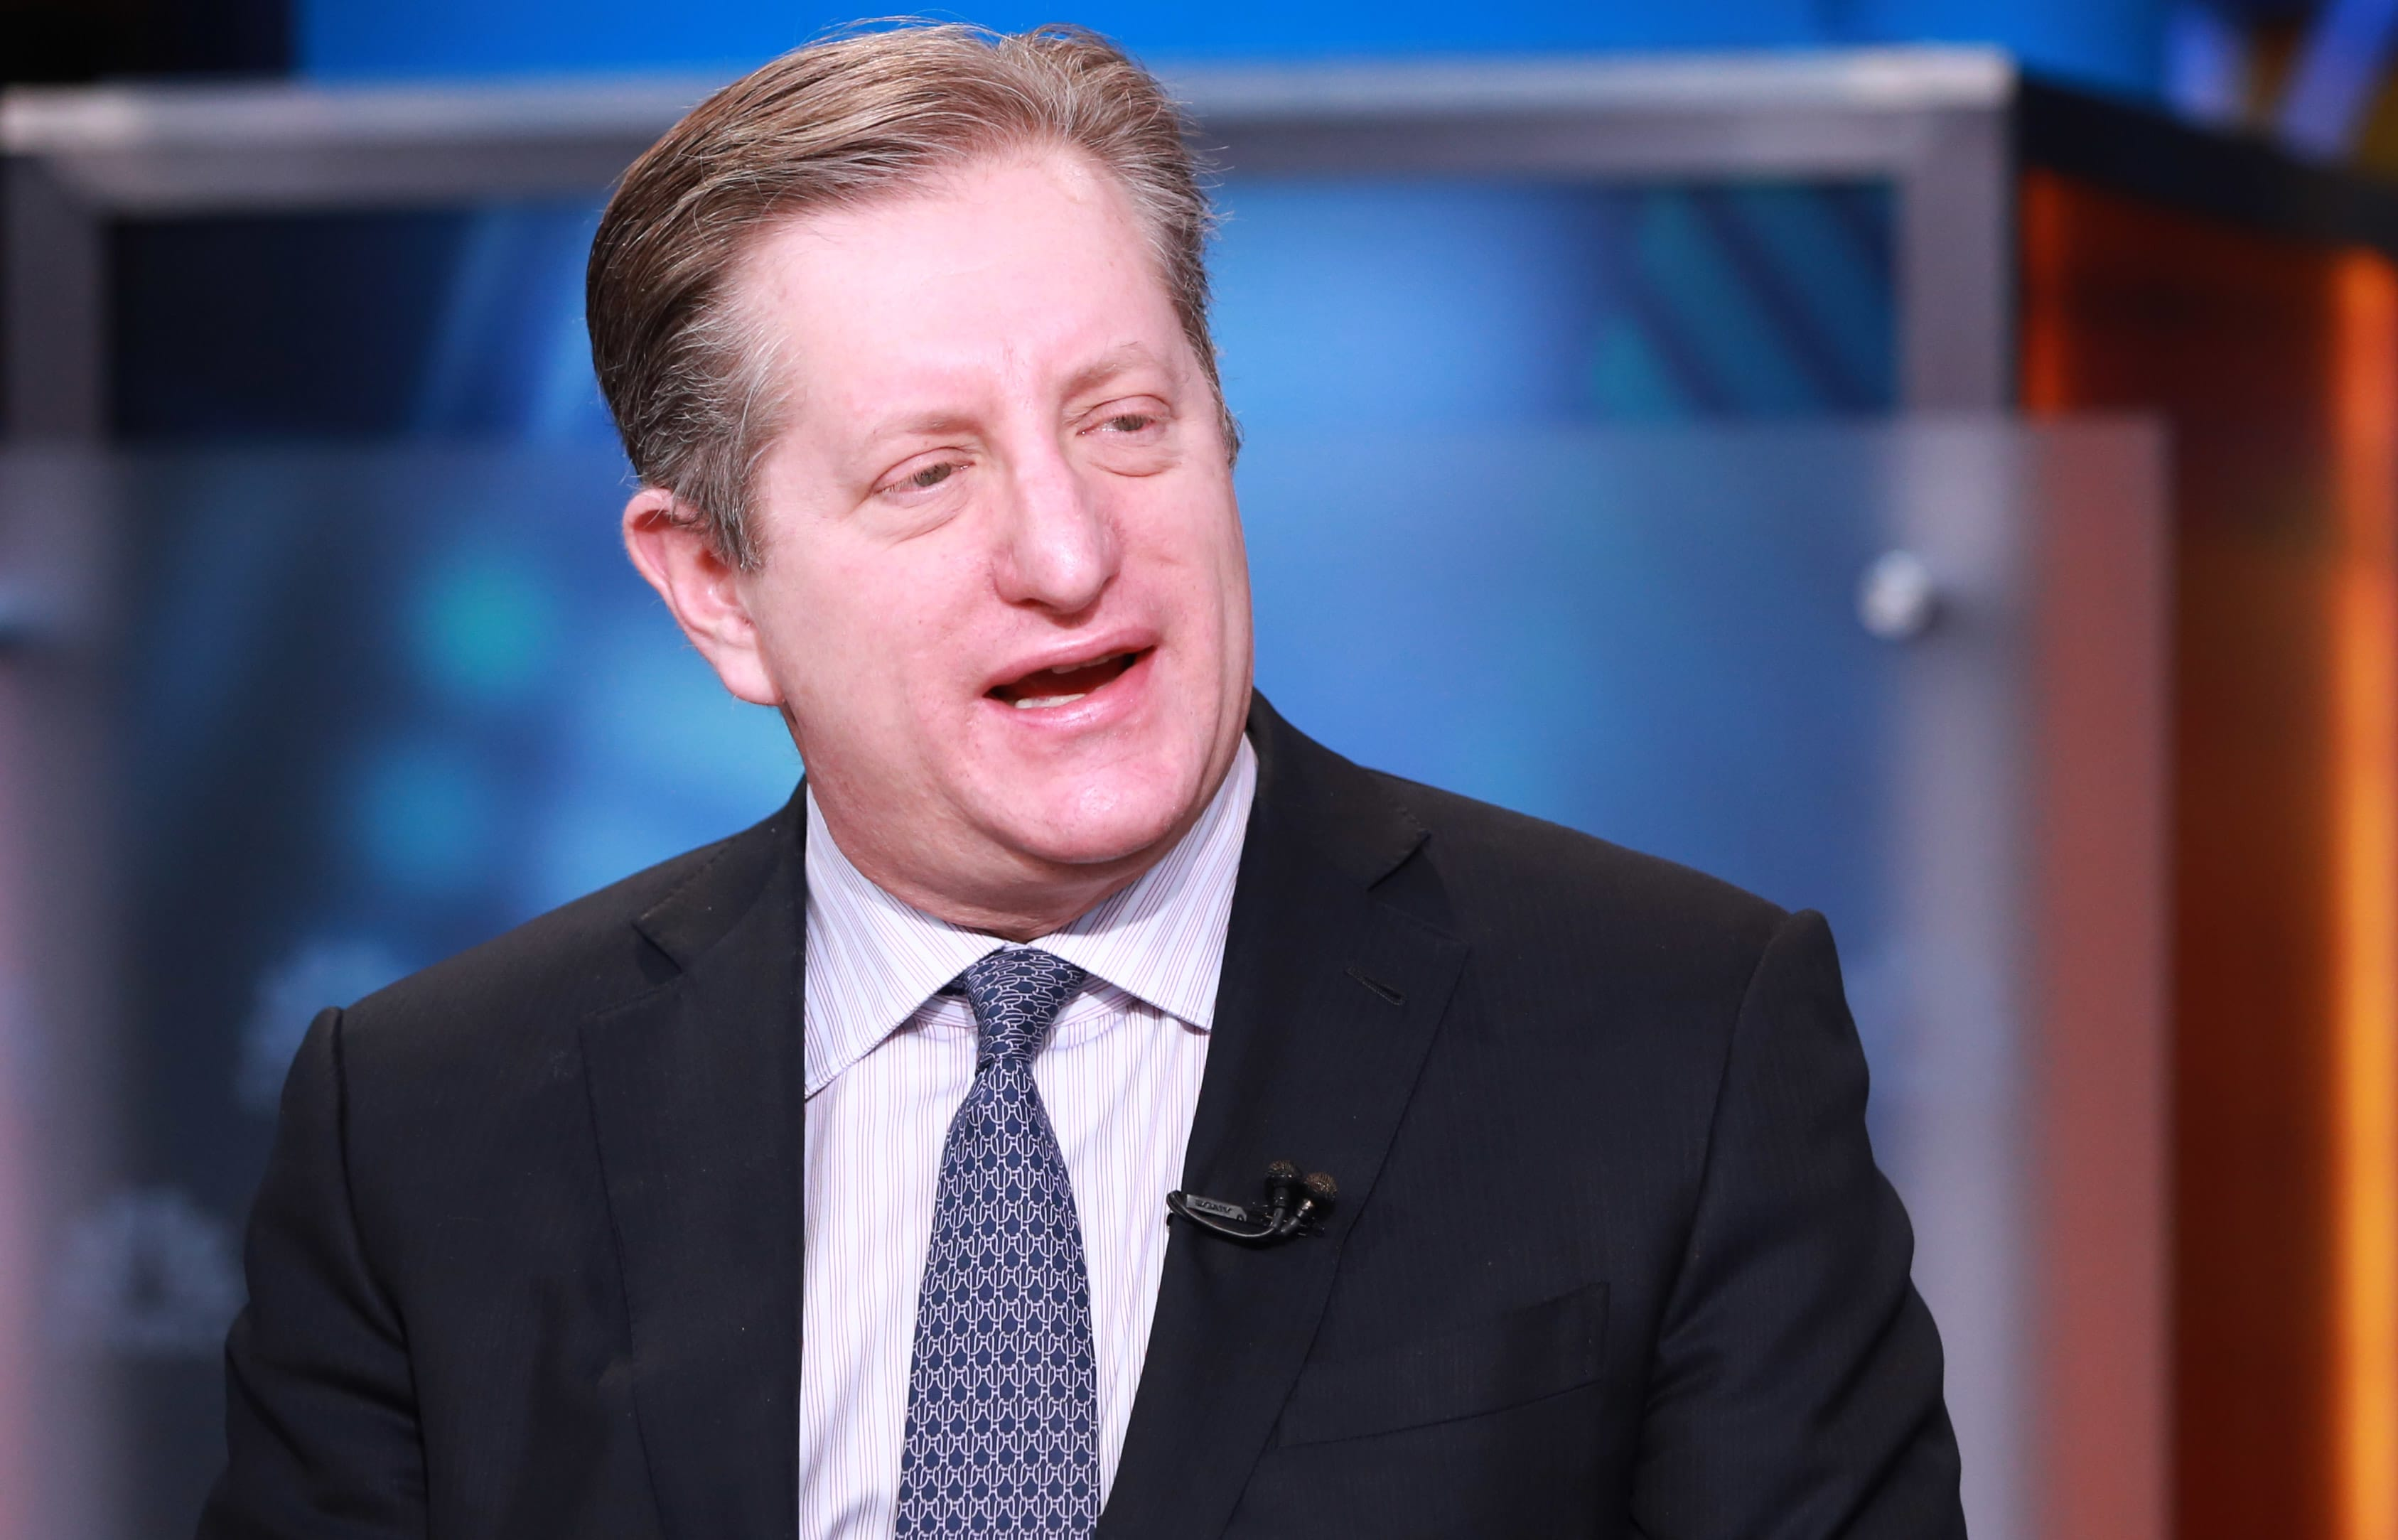 Steve Eisman says Hong Kong protests are his biggest worry with economy, a possible 'black swan'